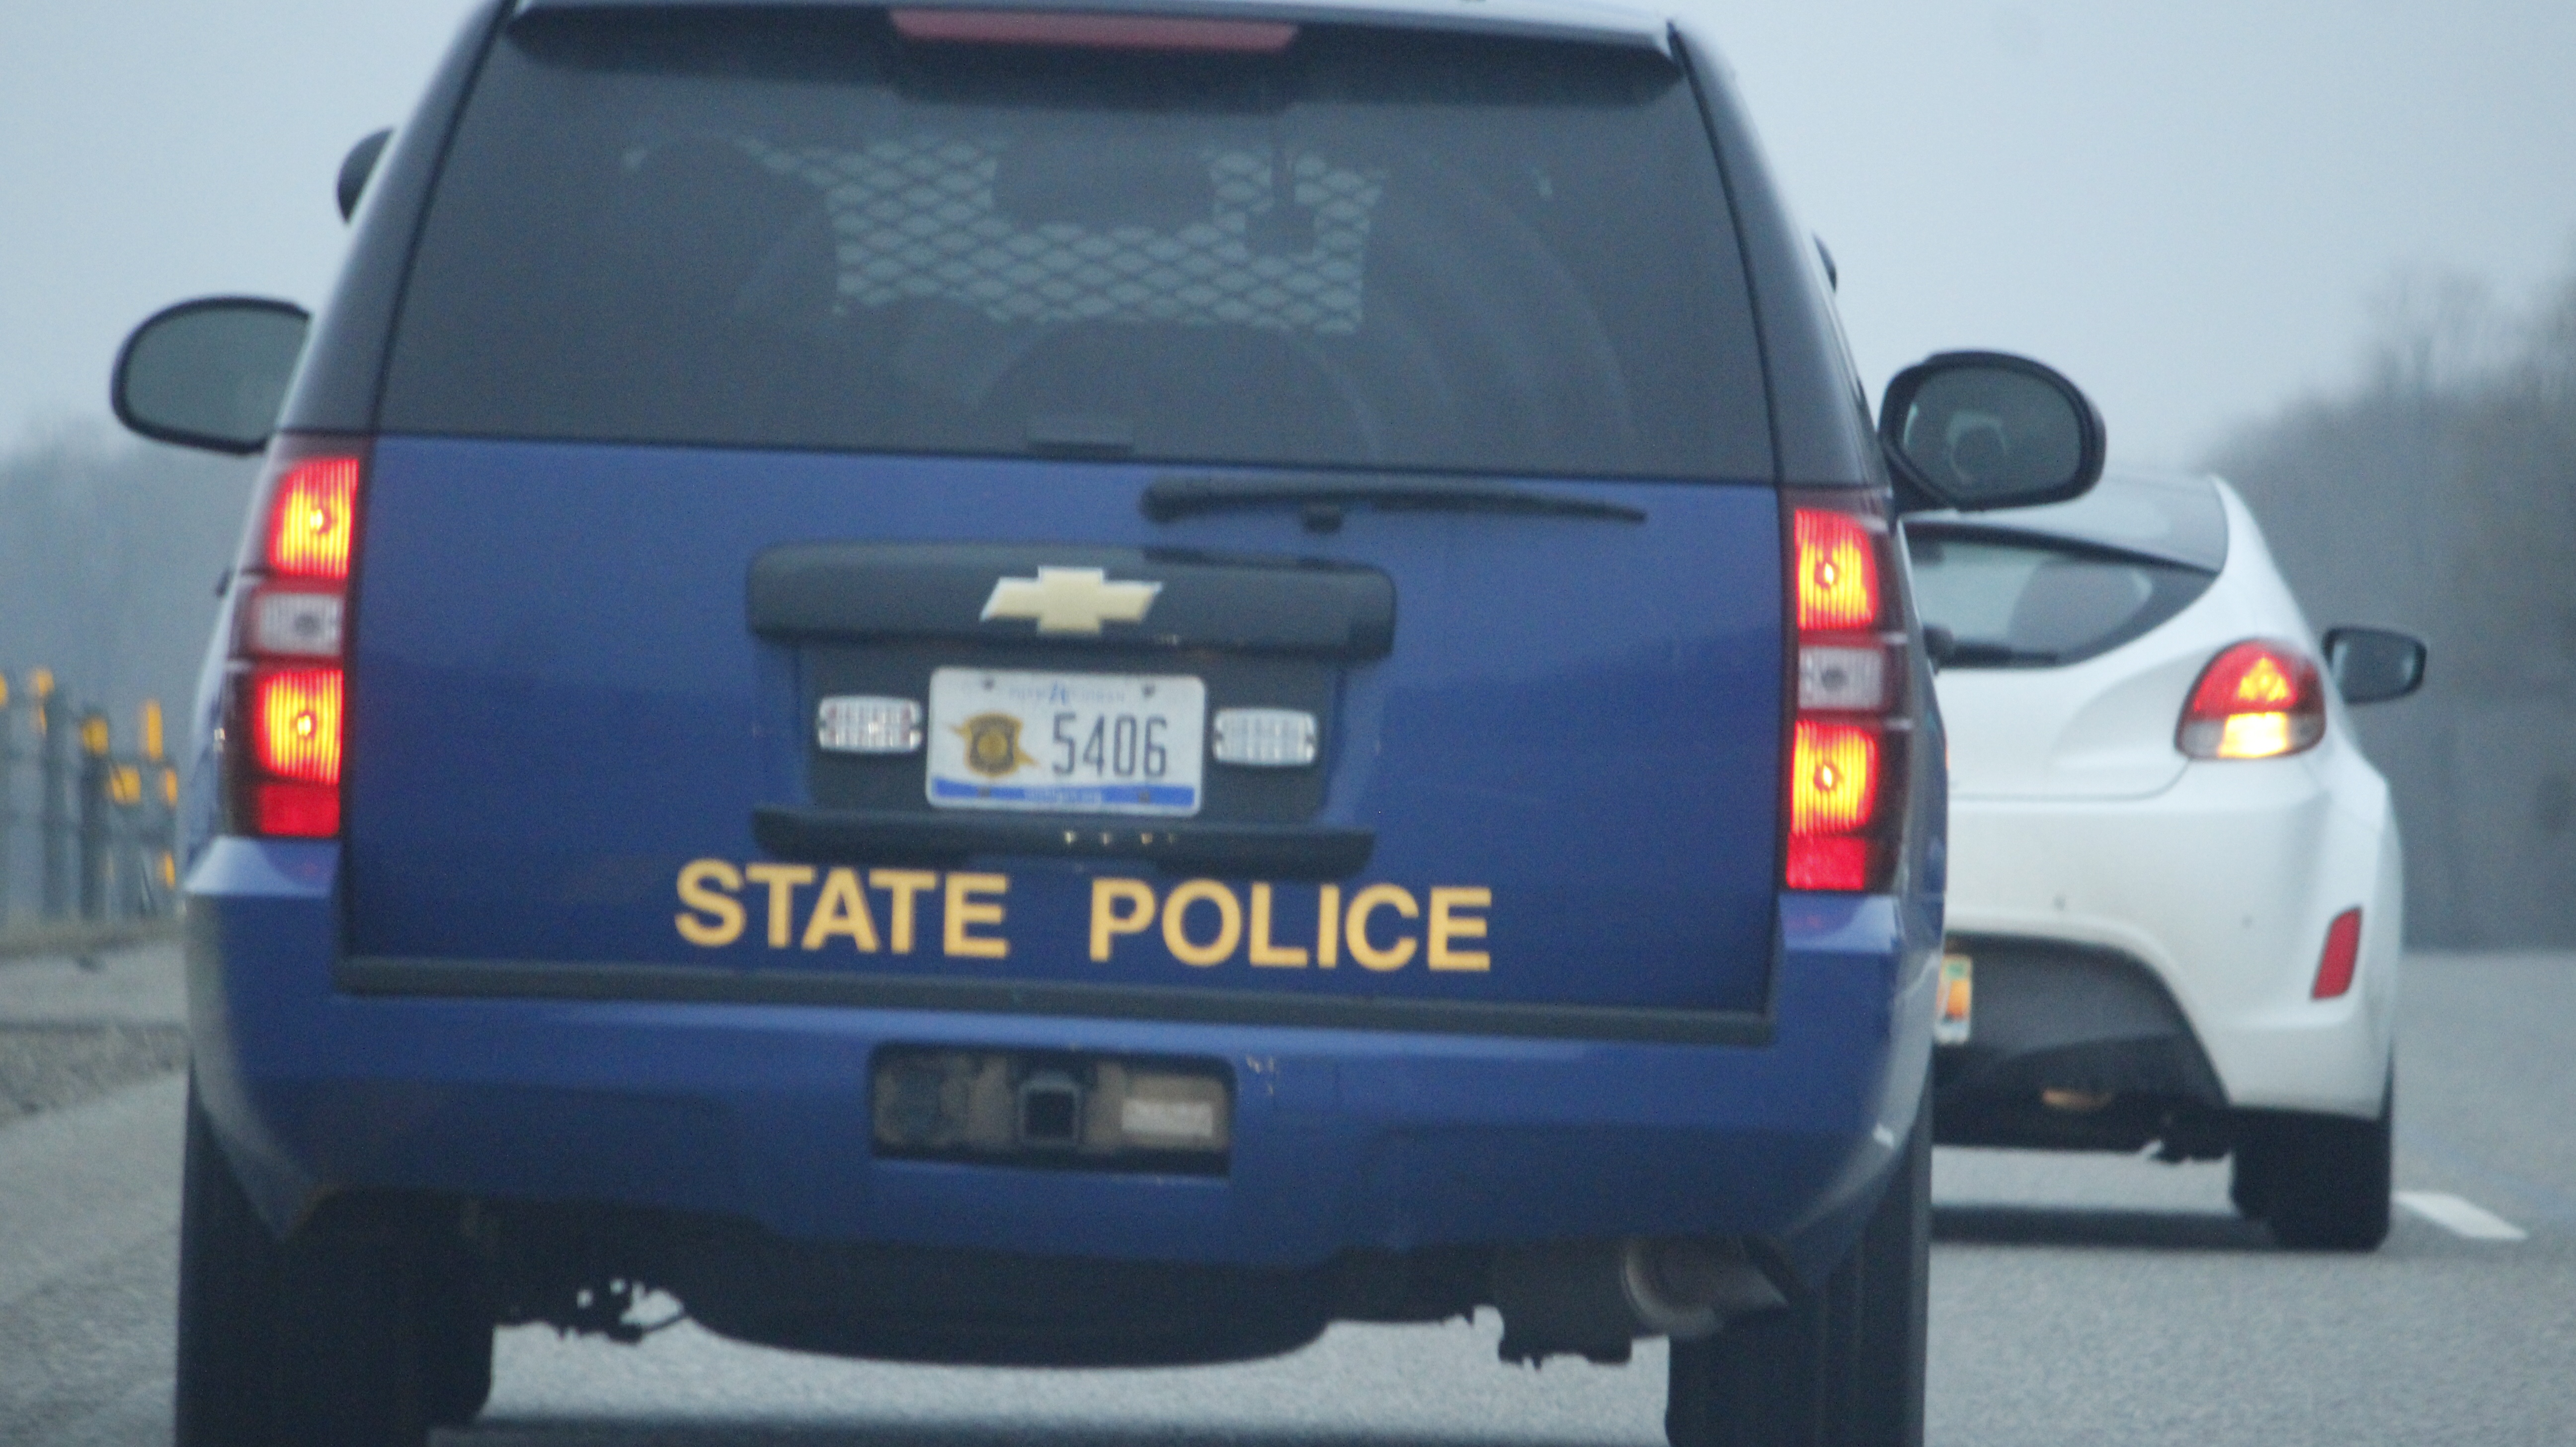 State Police to Participate in Multi-State Commercial Vehicle Enforcement Operation Involving I-94